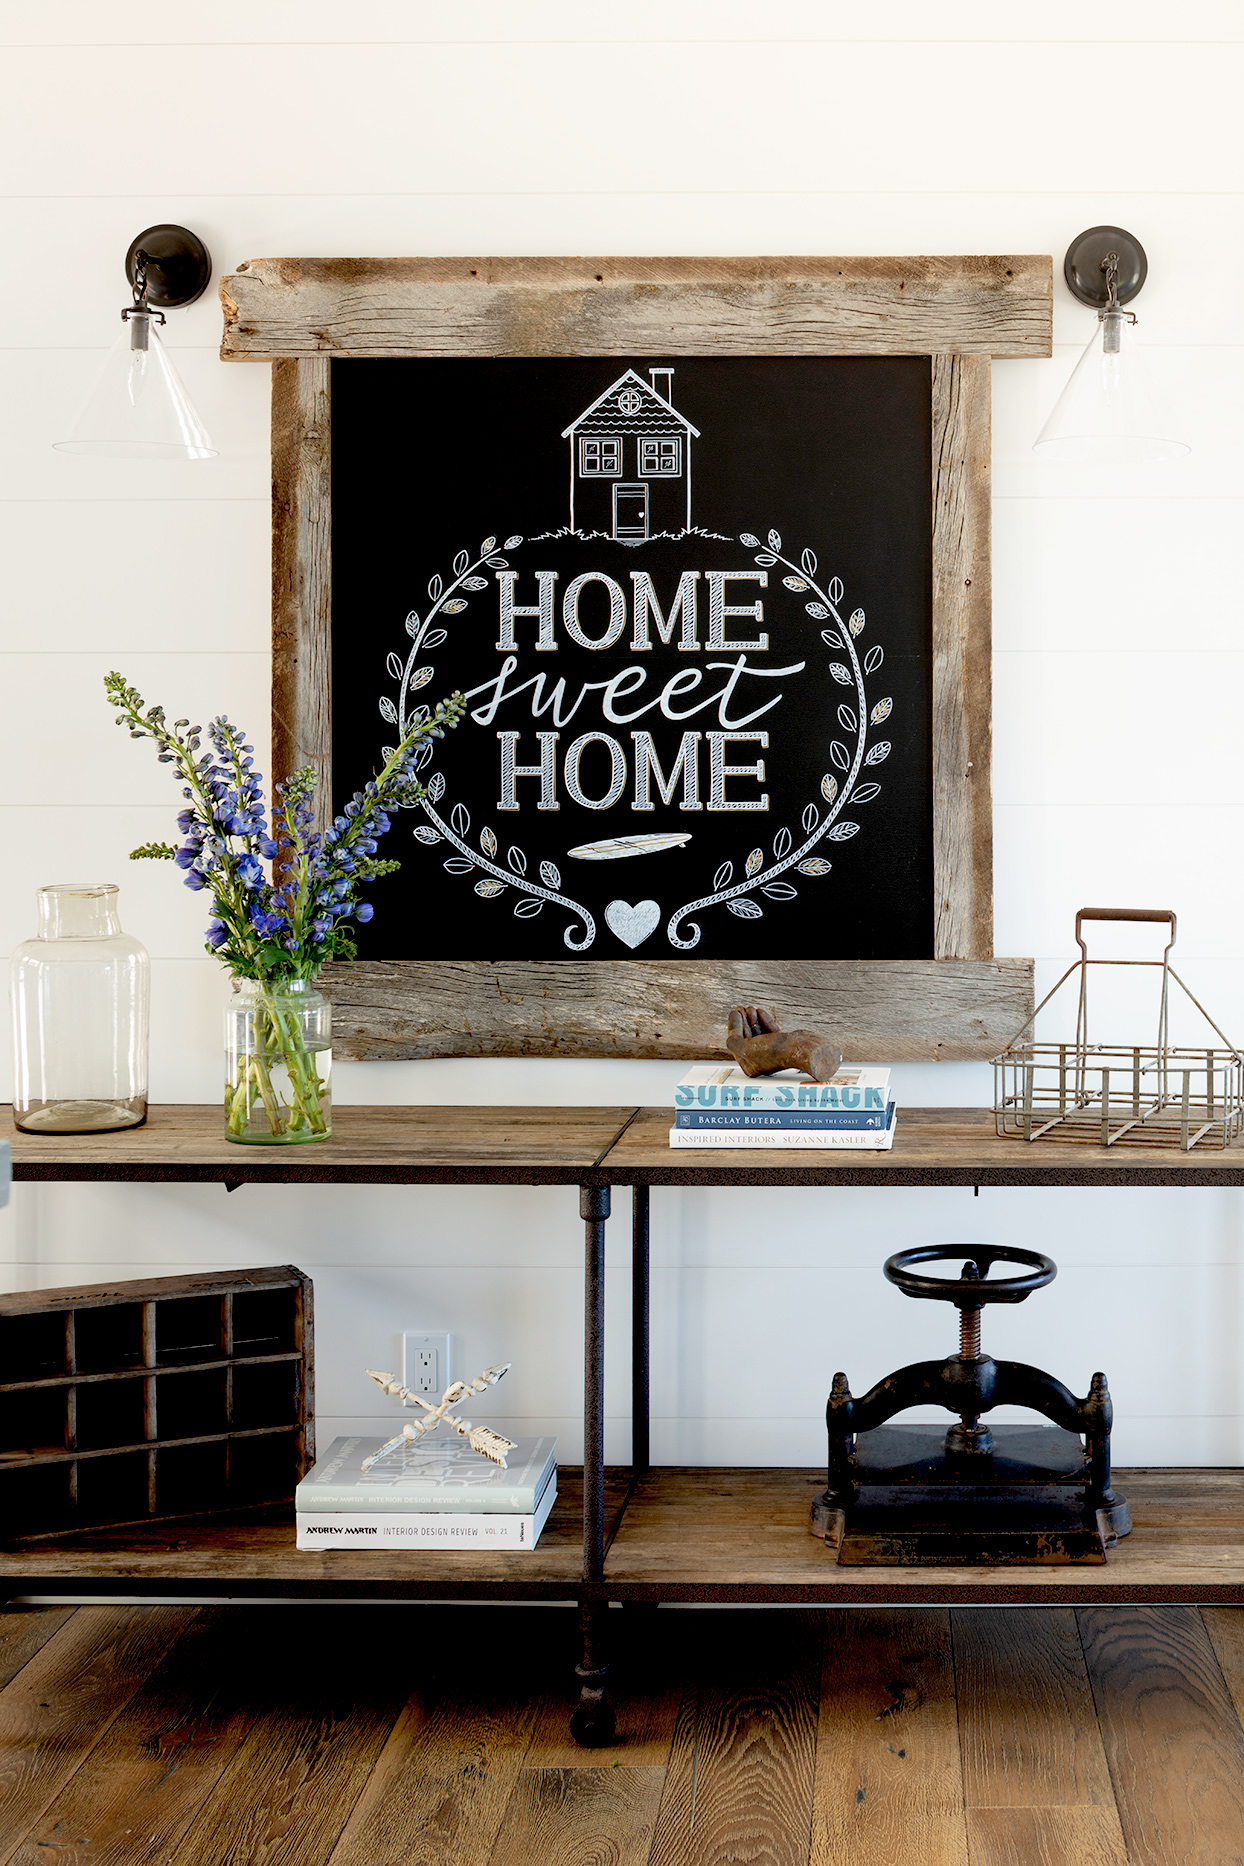 Home Sweet Home chalkboard sign